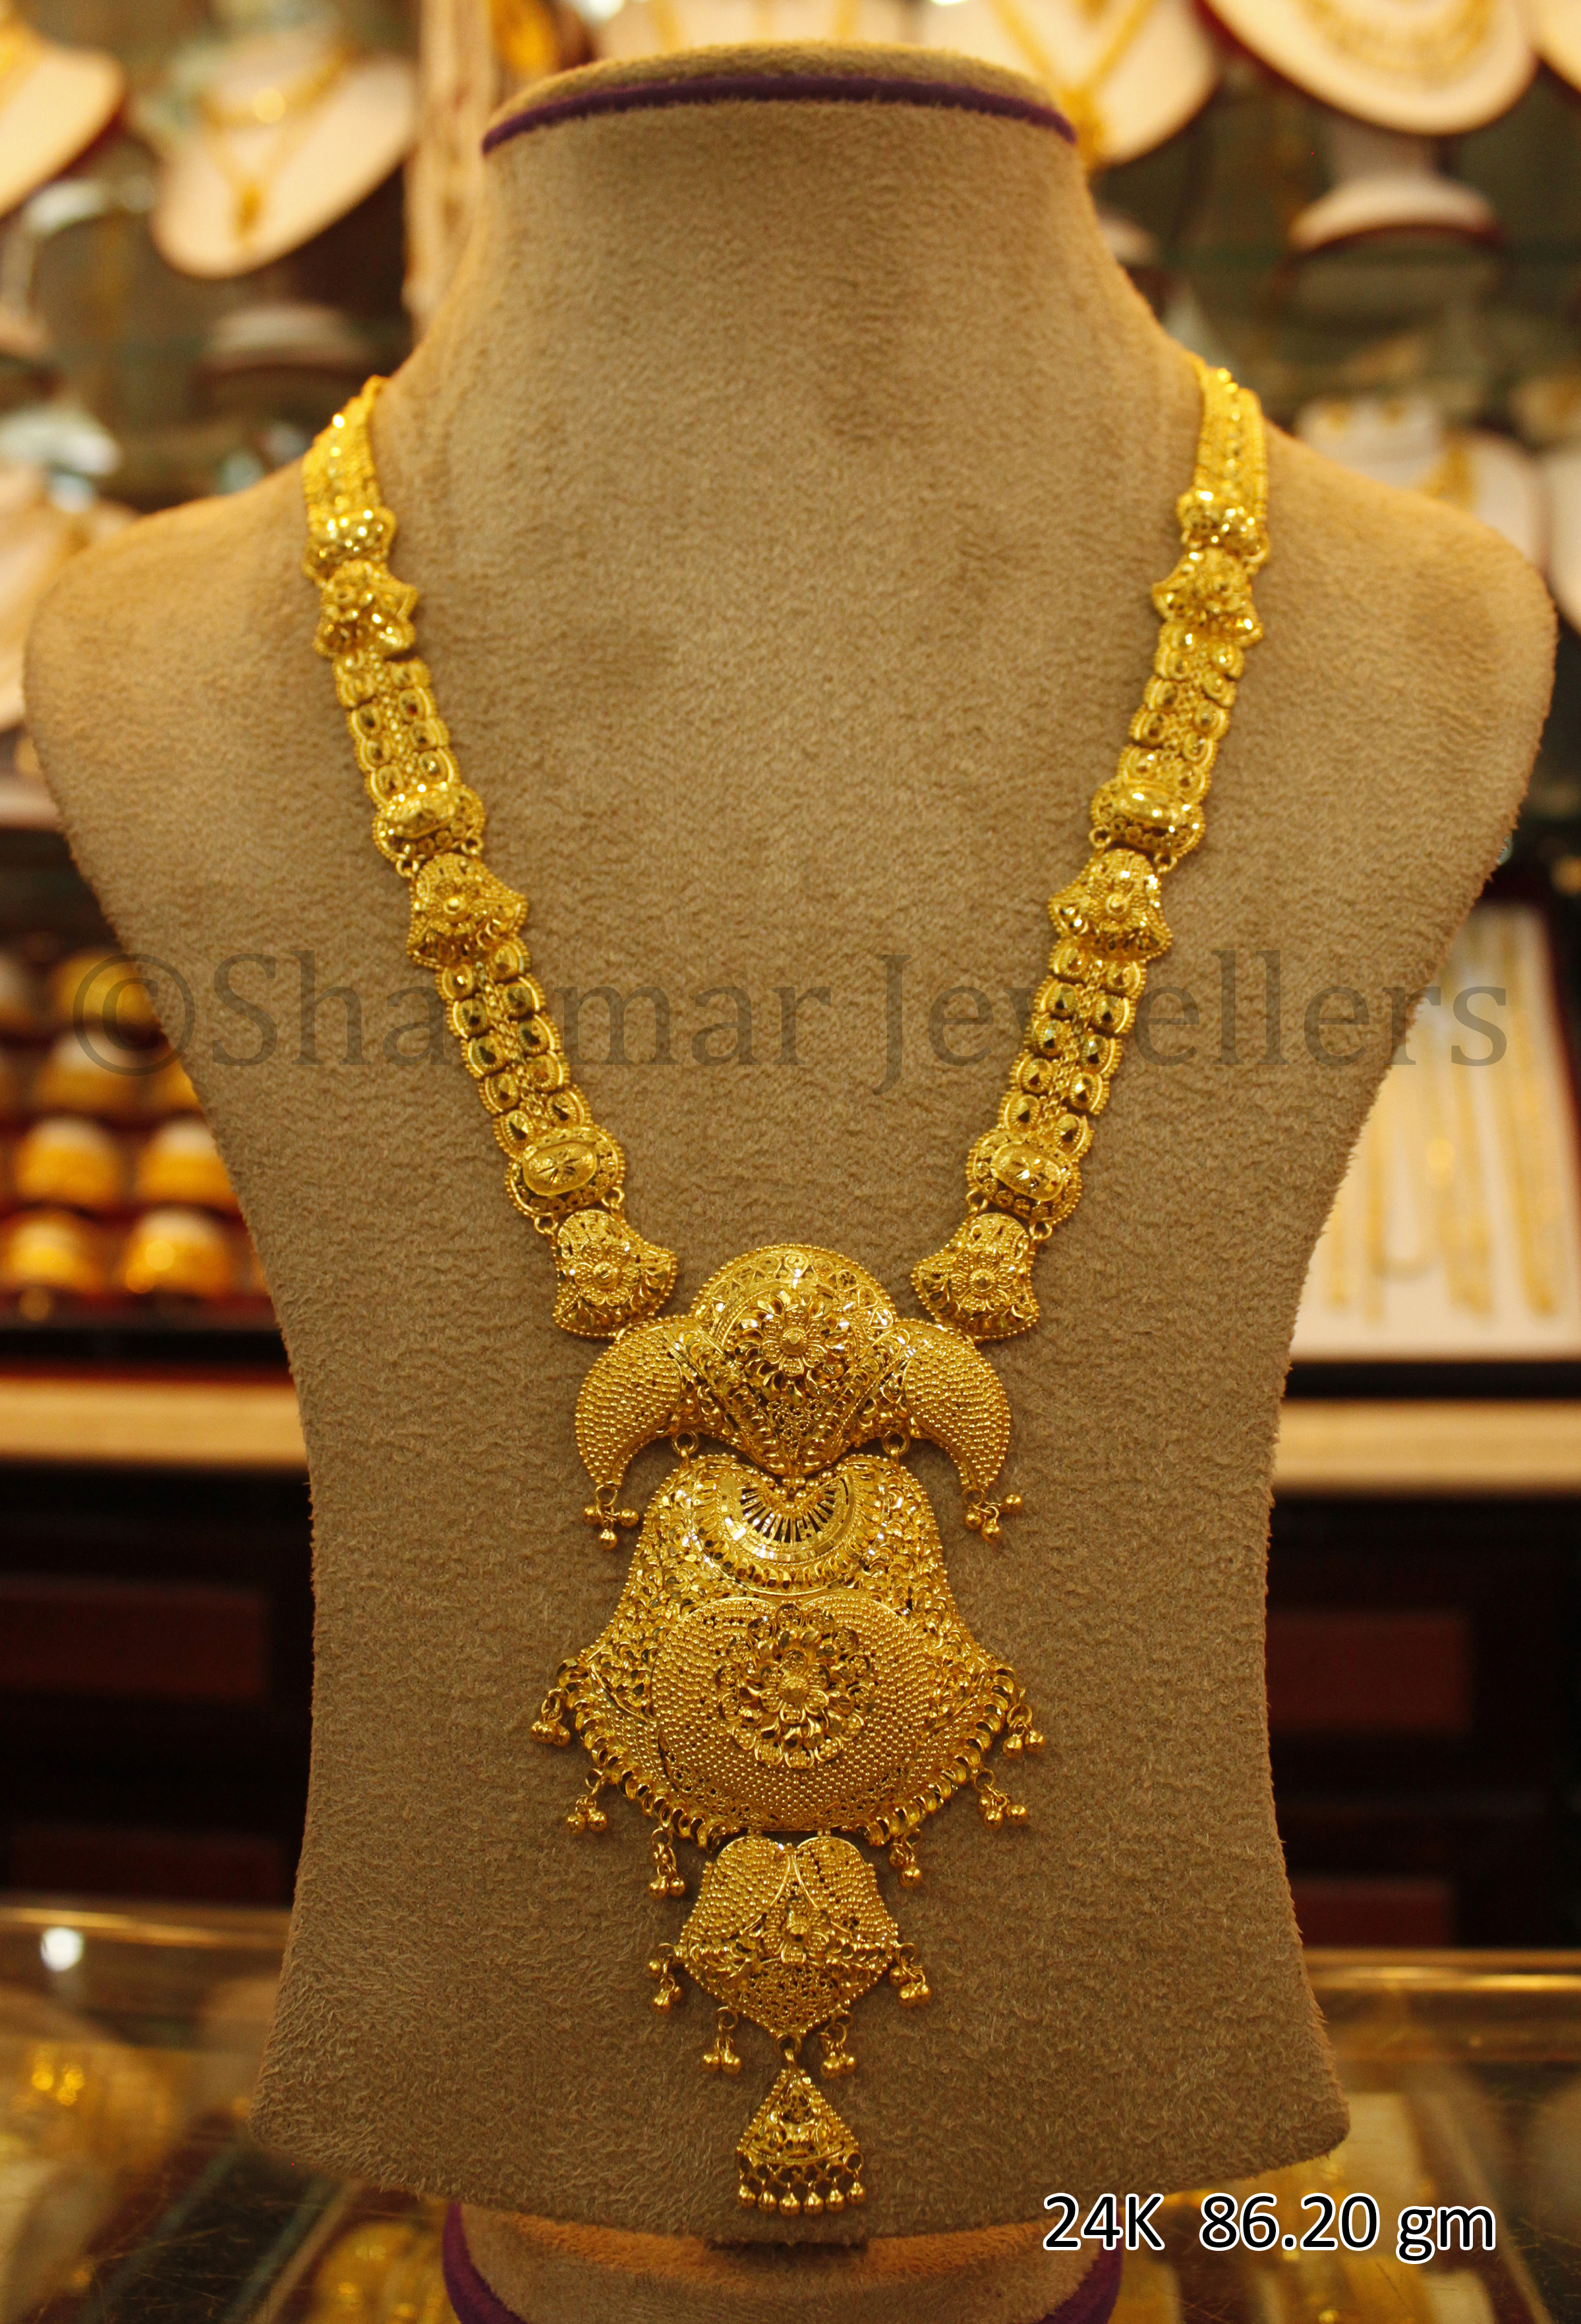 87f21babb Wedding Gold Necklace - 86.20 gm - (SM-003) by Shalimar Jewellers ...